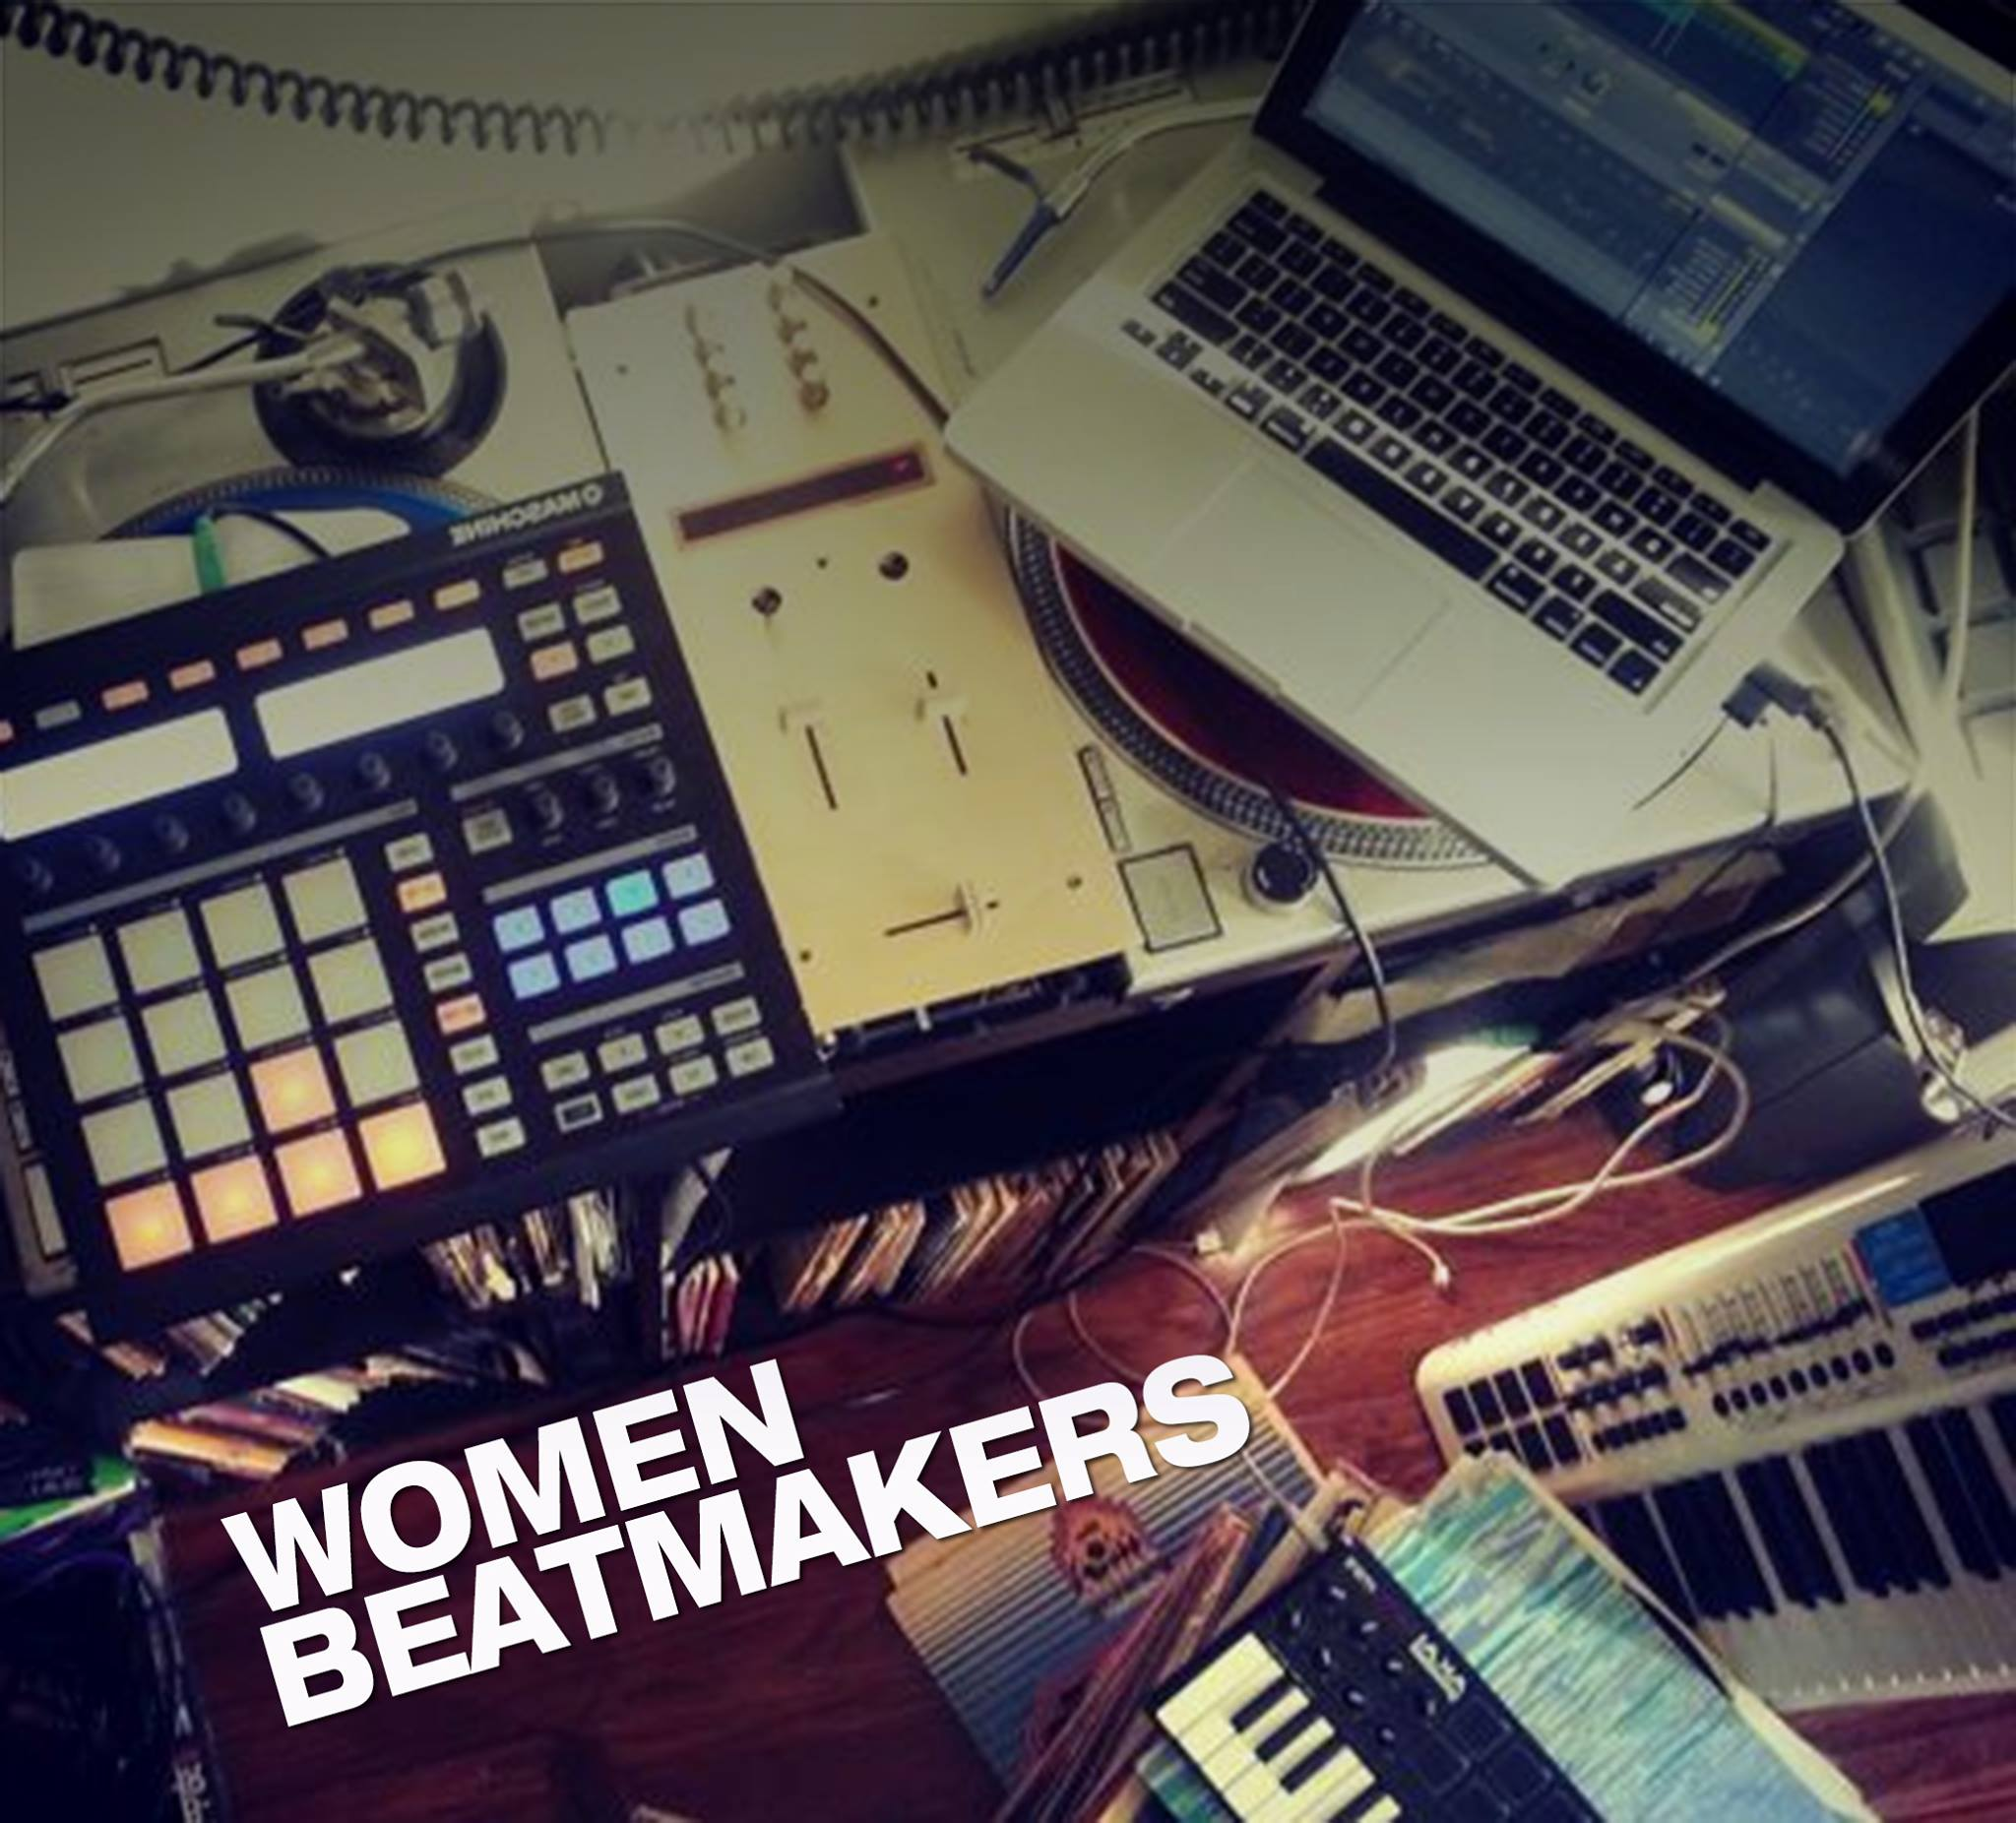 Women Beatmakers